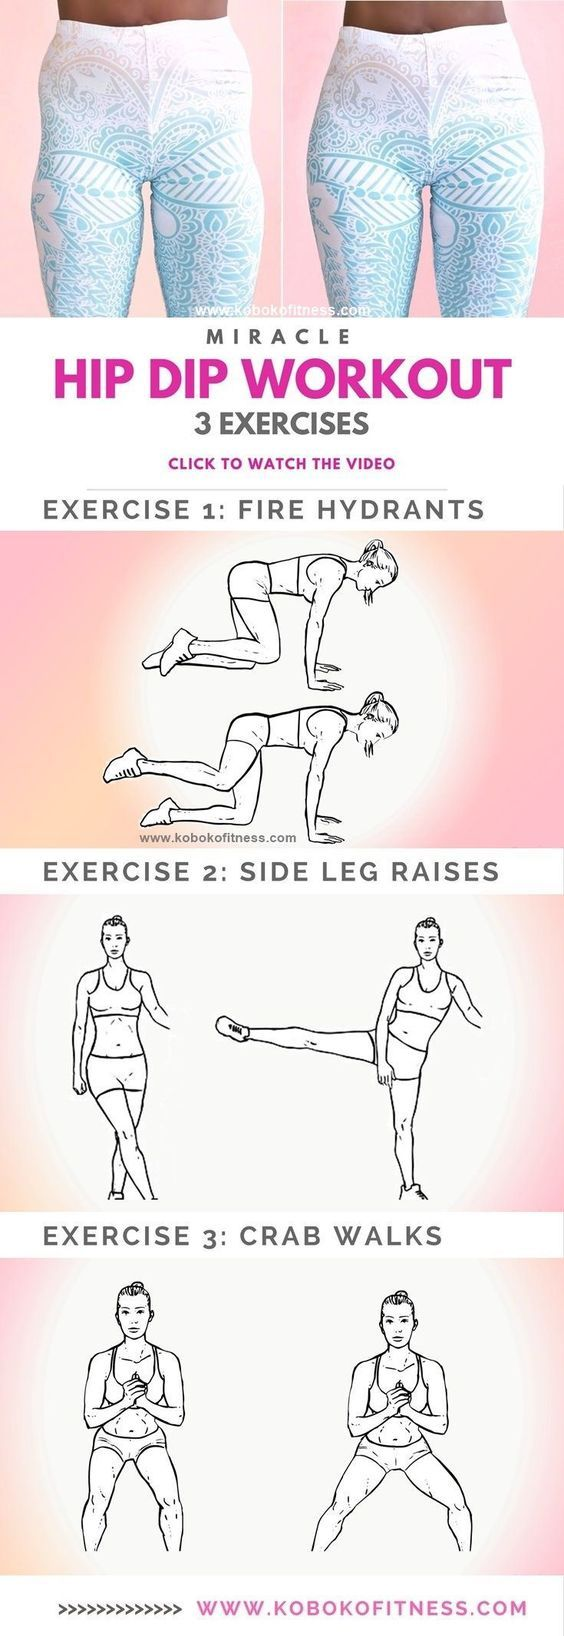 Learn the 10 Minute Wider Hips Workout to Fix Hip Dips-The best hip dip workout exercises with full workout video that is easy to follow. Add this to your butt workout for wider hips and an hour glass figure - Tap the pin if you love super heroes too! Cau